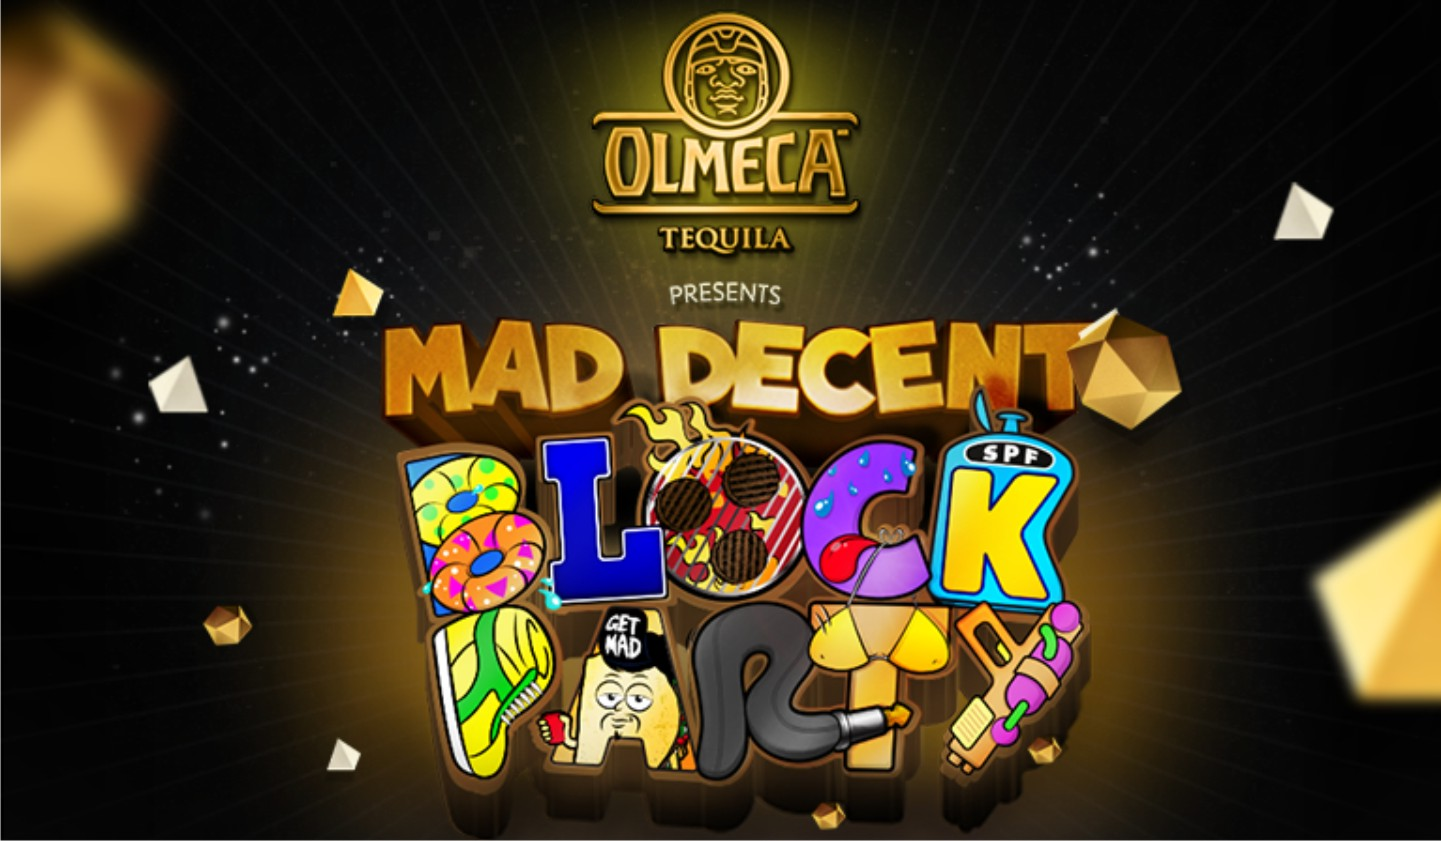 Olmeca Tequila presents Mad Decent Block Party